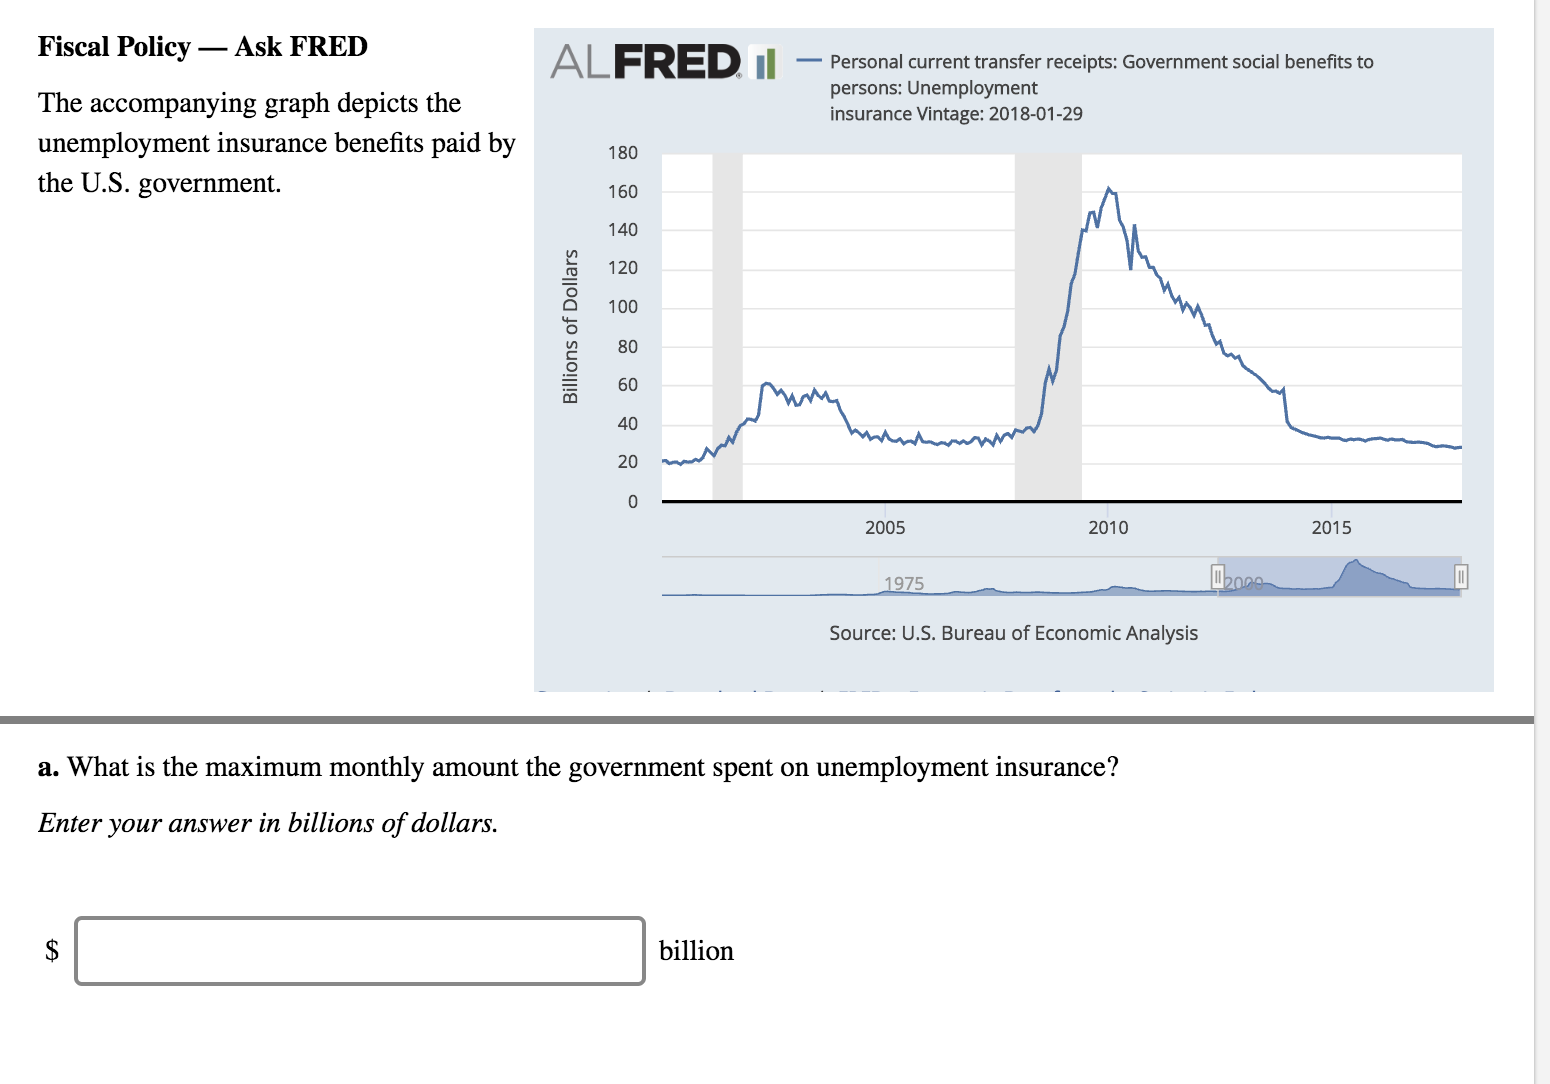 Fiscal Policy- Ask FRED The accompanying graph depicts the unemplovment insurance benefits paid bv the U.S. government. ALFREDP Personal current transfer receipts: Government social benefits to persons: Unemployment insurance Vintage: 2018-01-29 180 160 140 120 100 60 40 20 2005 2010 2015 975 Source: U.S. Bureau of Economic Analysis a. What is the maximum monthly amount the government spent on unemployment insurance? Enter your answer in billions of dollars billion